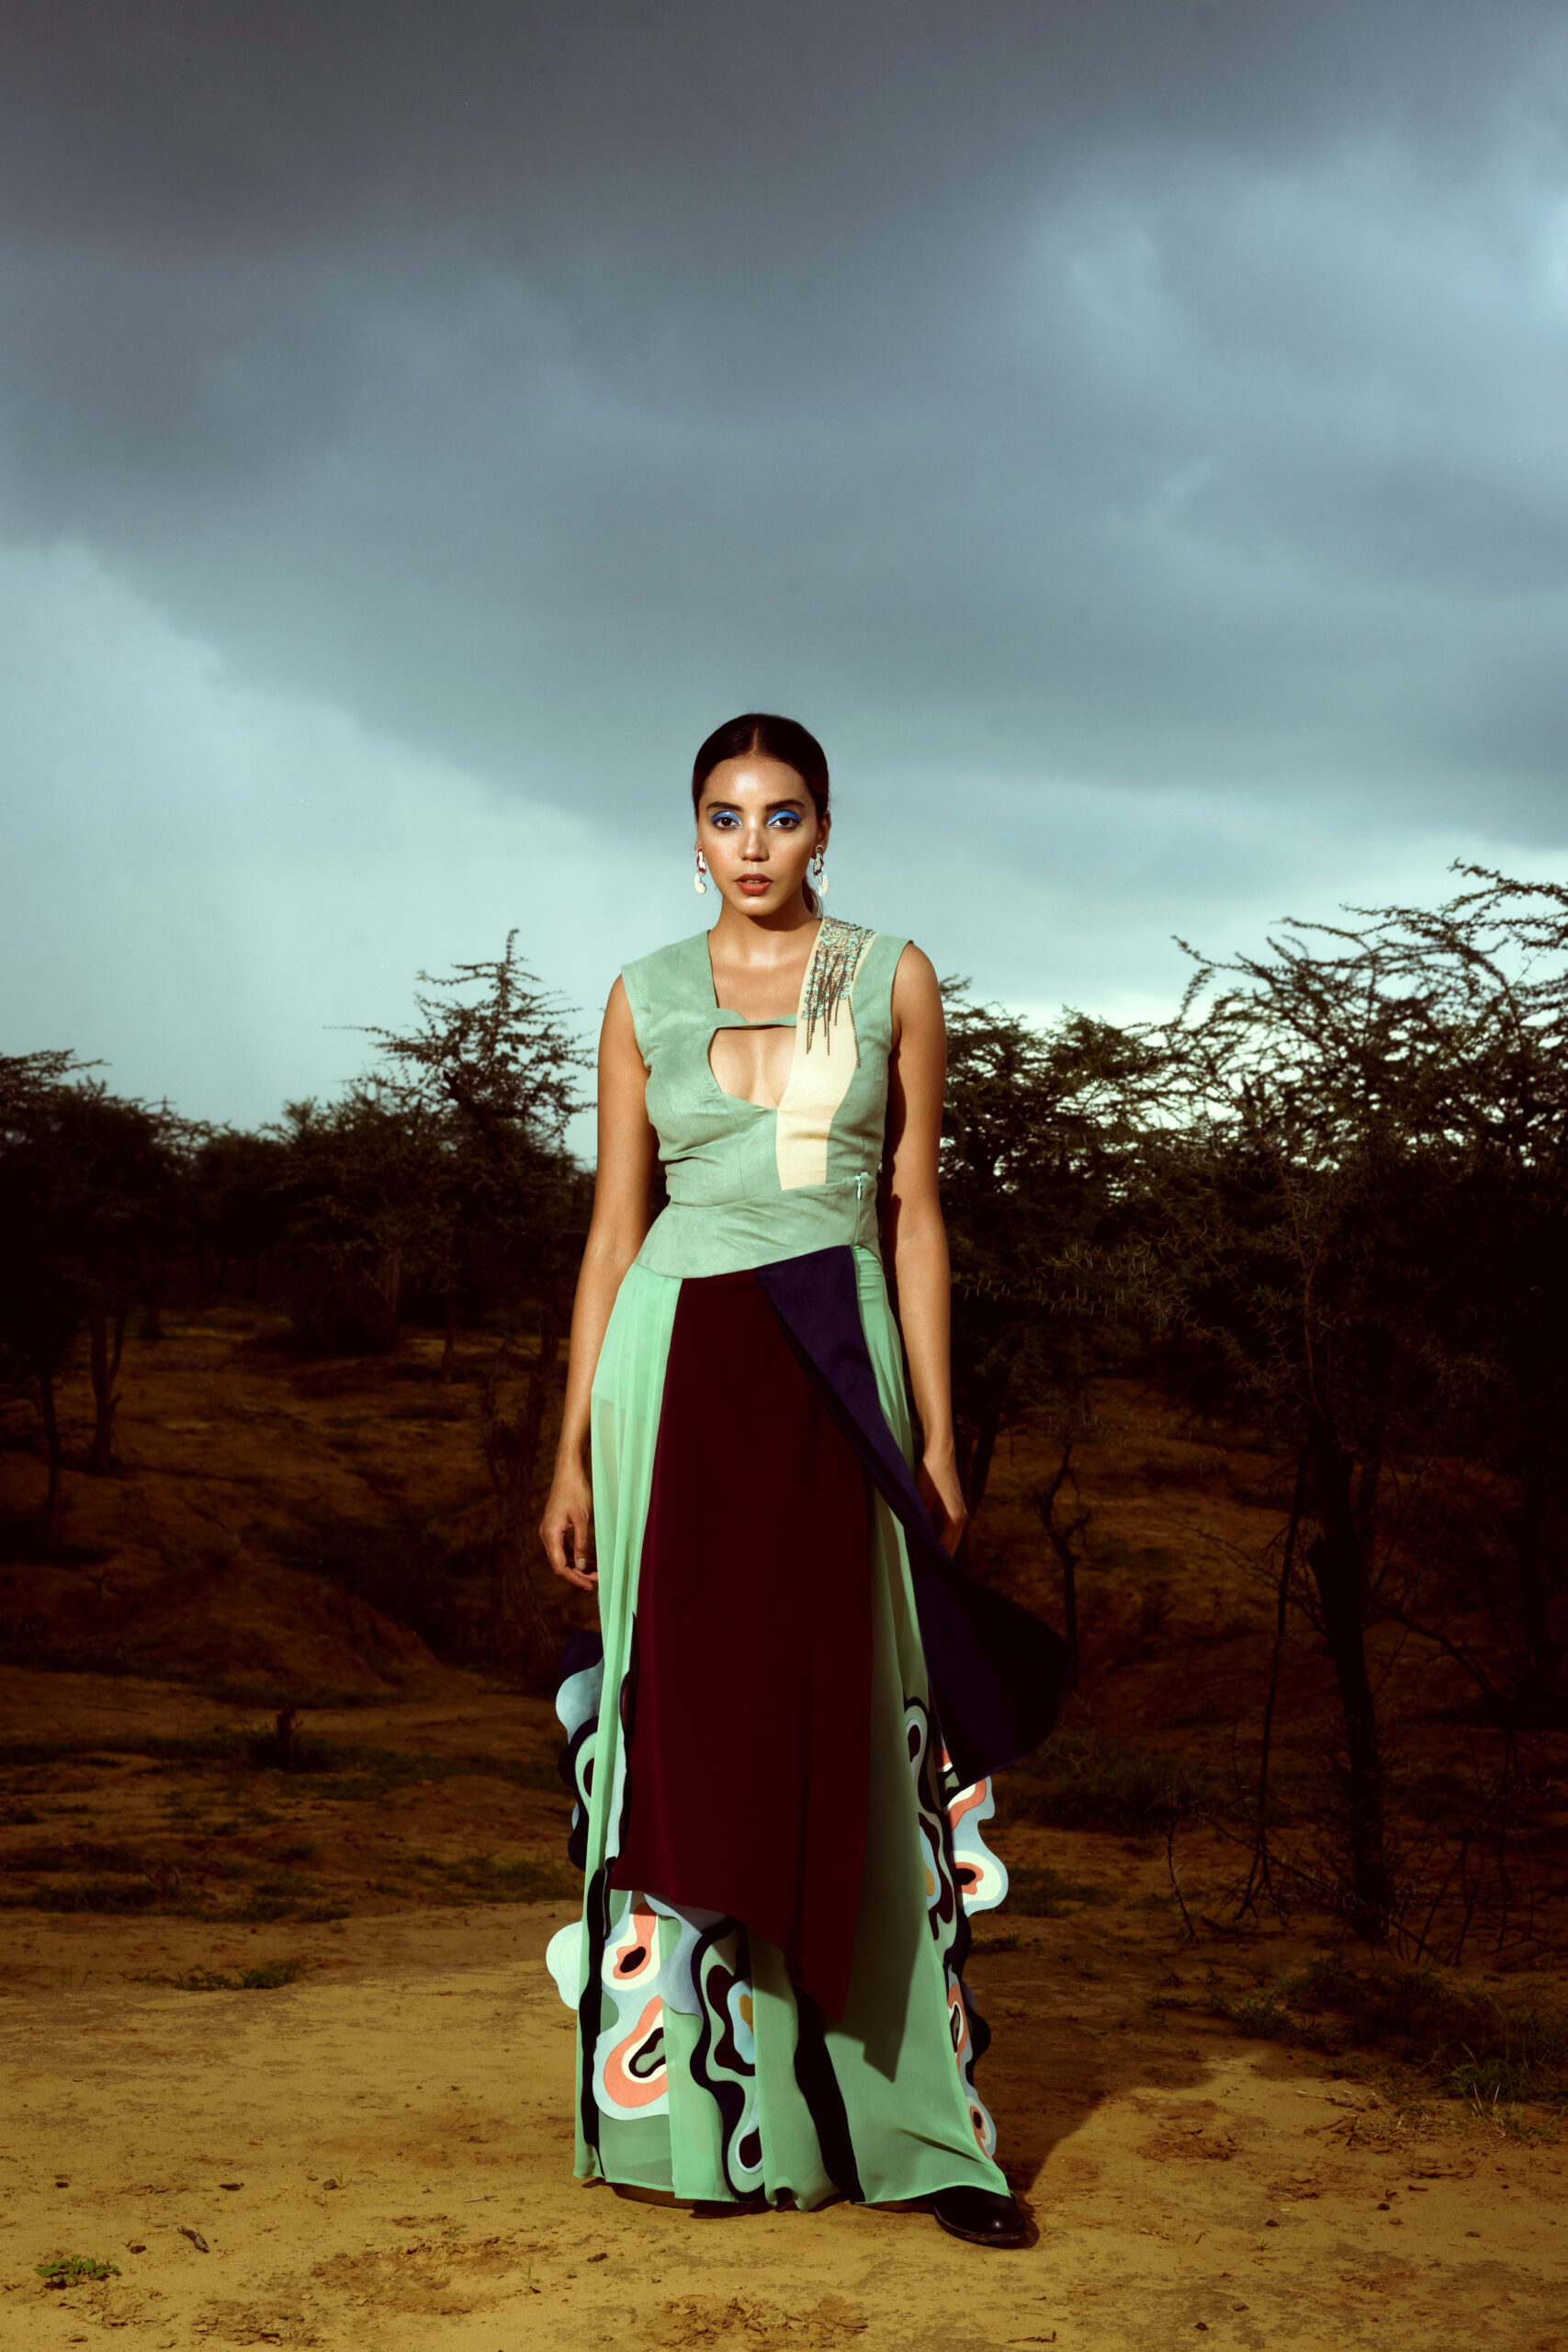 Folded Waves Bodysuit & Skirt by Siddhant Agrawal